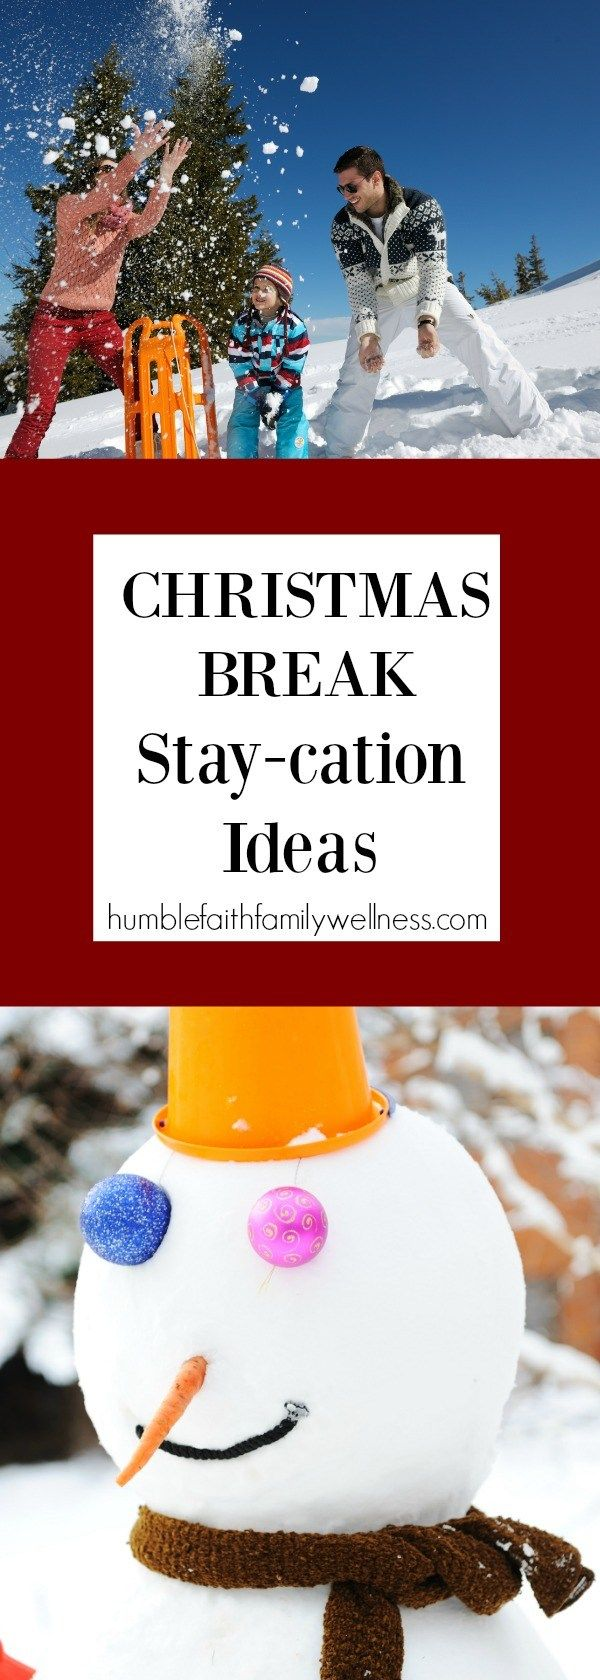 Christmas break doesn't have to be expensive or entail a large trip. Find great activities right in you own area! #ChristmasBreak #WinterActivities #Christmas #Family